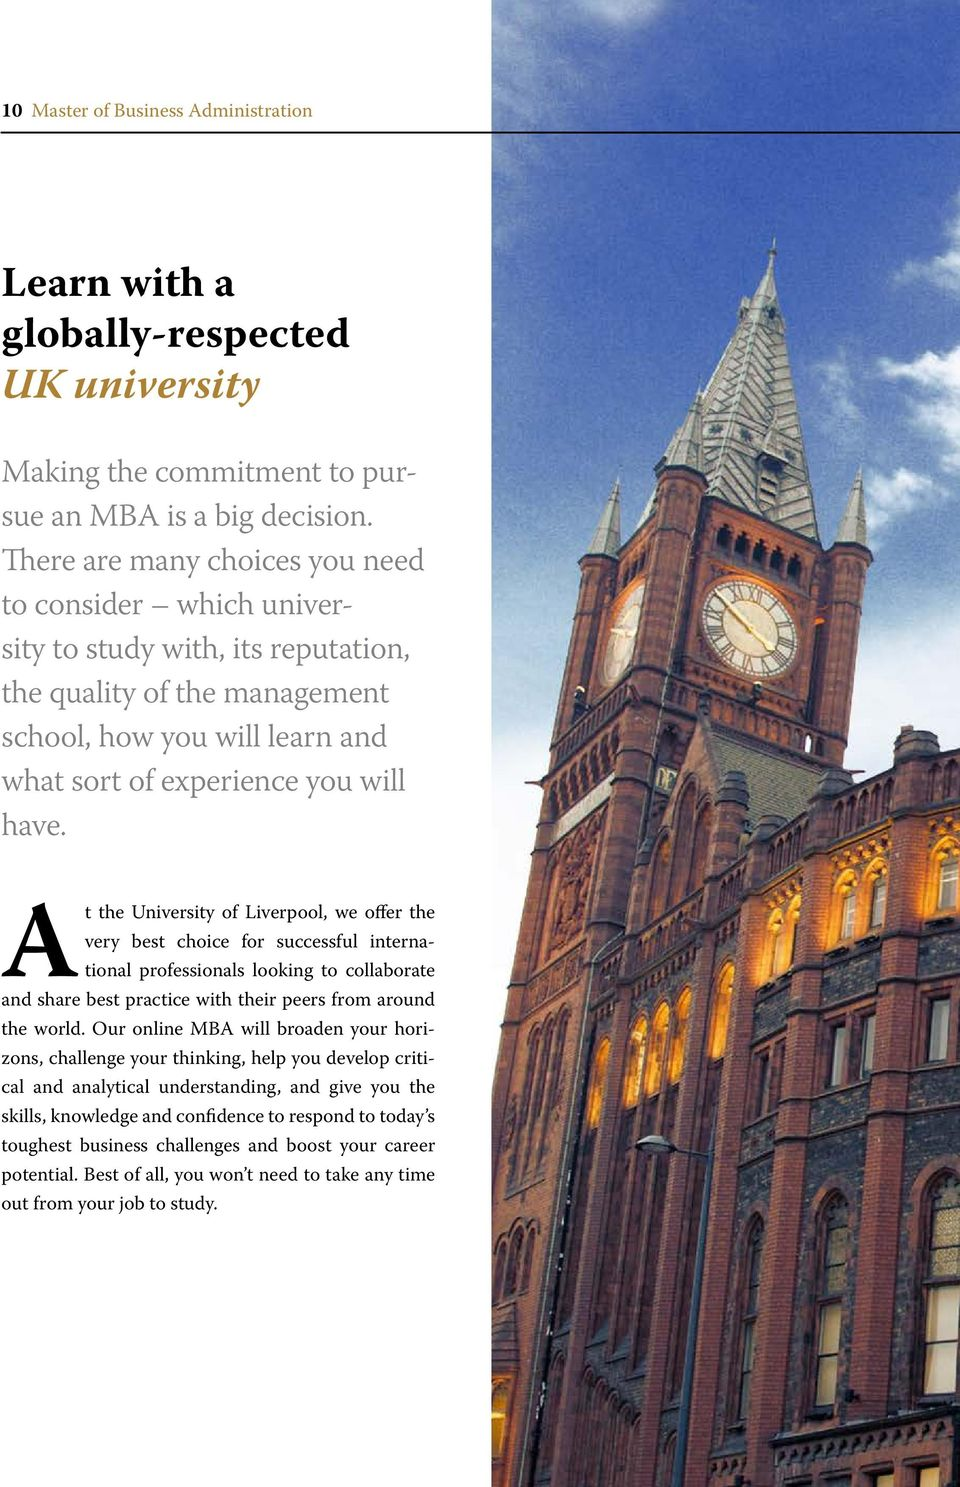 At the University of Liverpool, we offer the very best choice for successful international professionals looking to collaborate and share best practice with their peers from around the world.